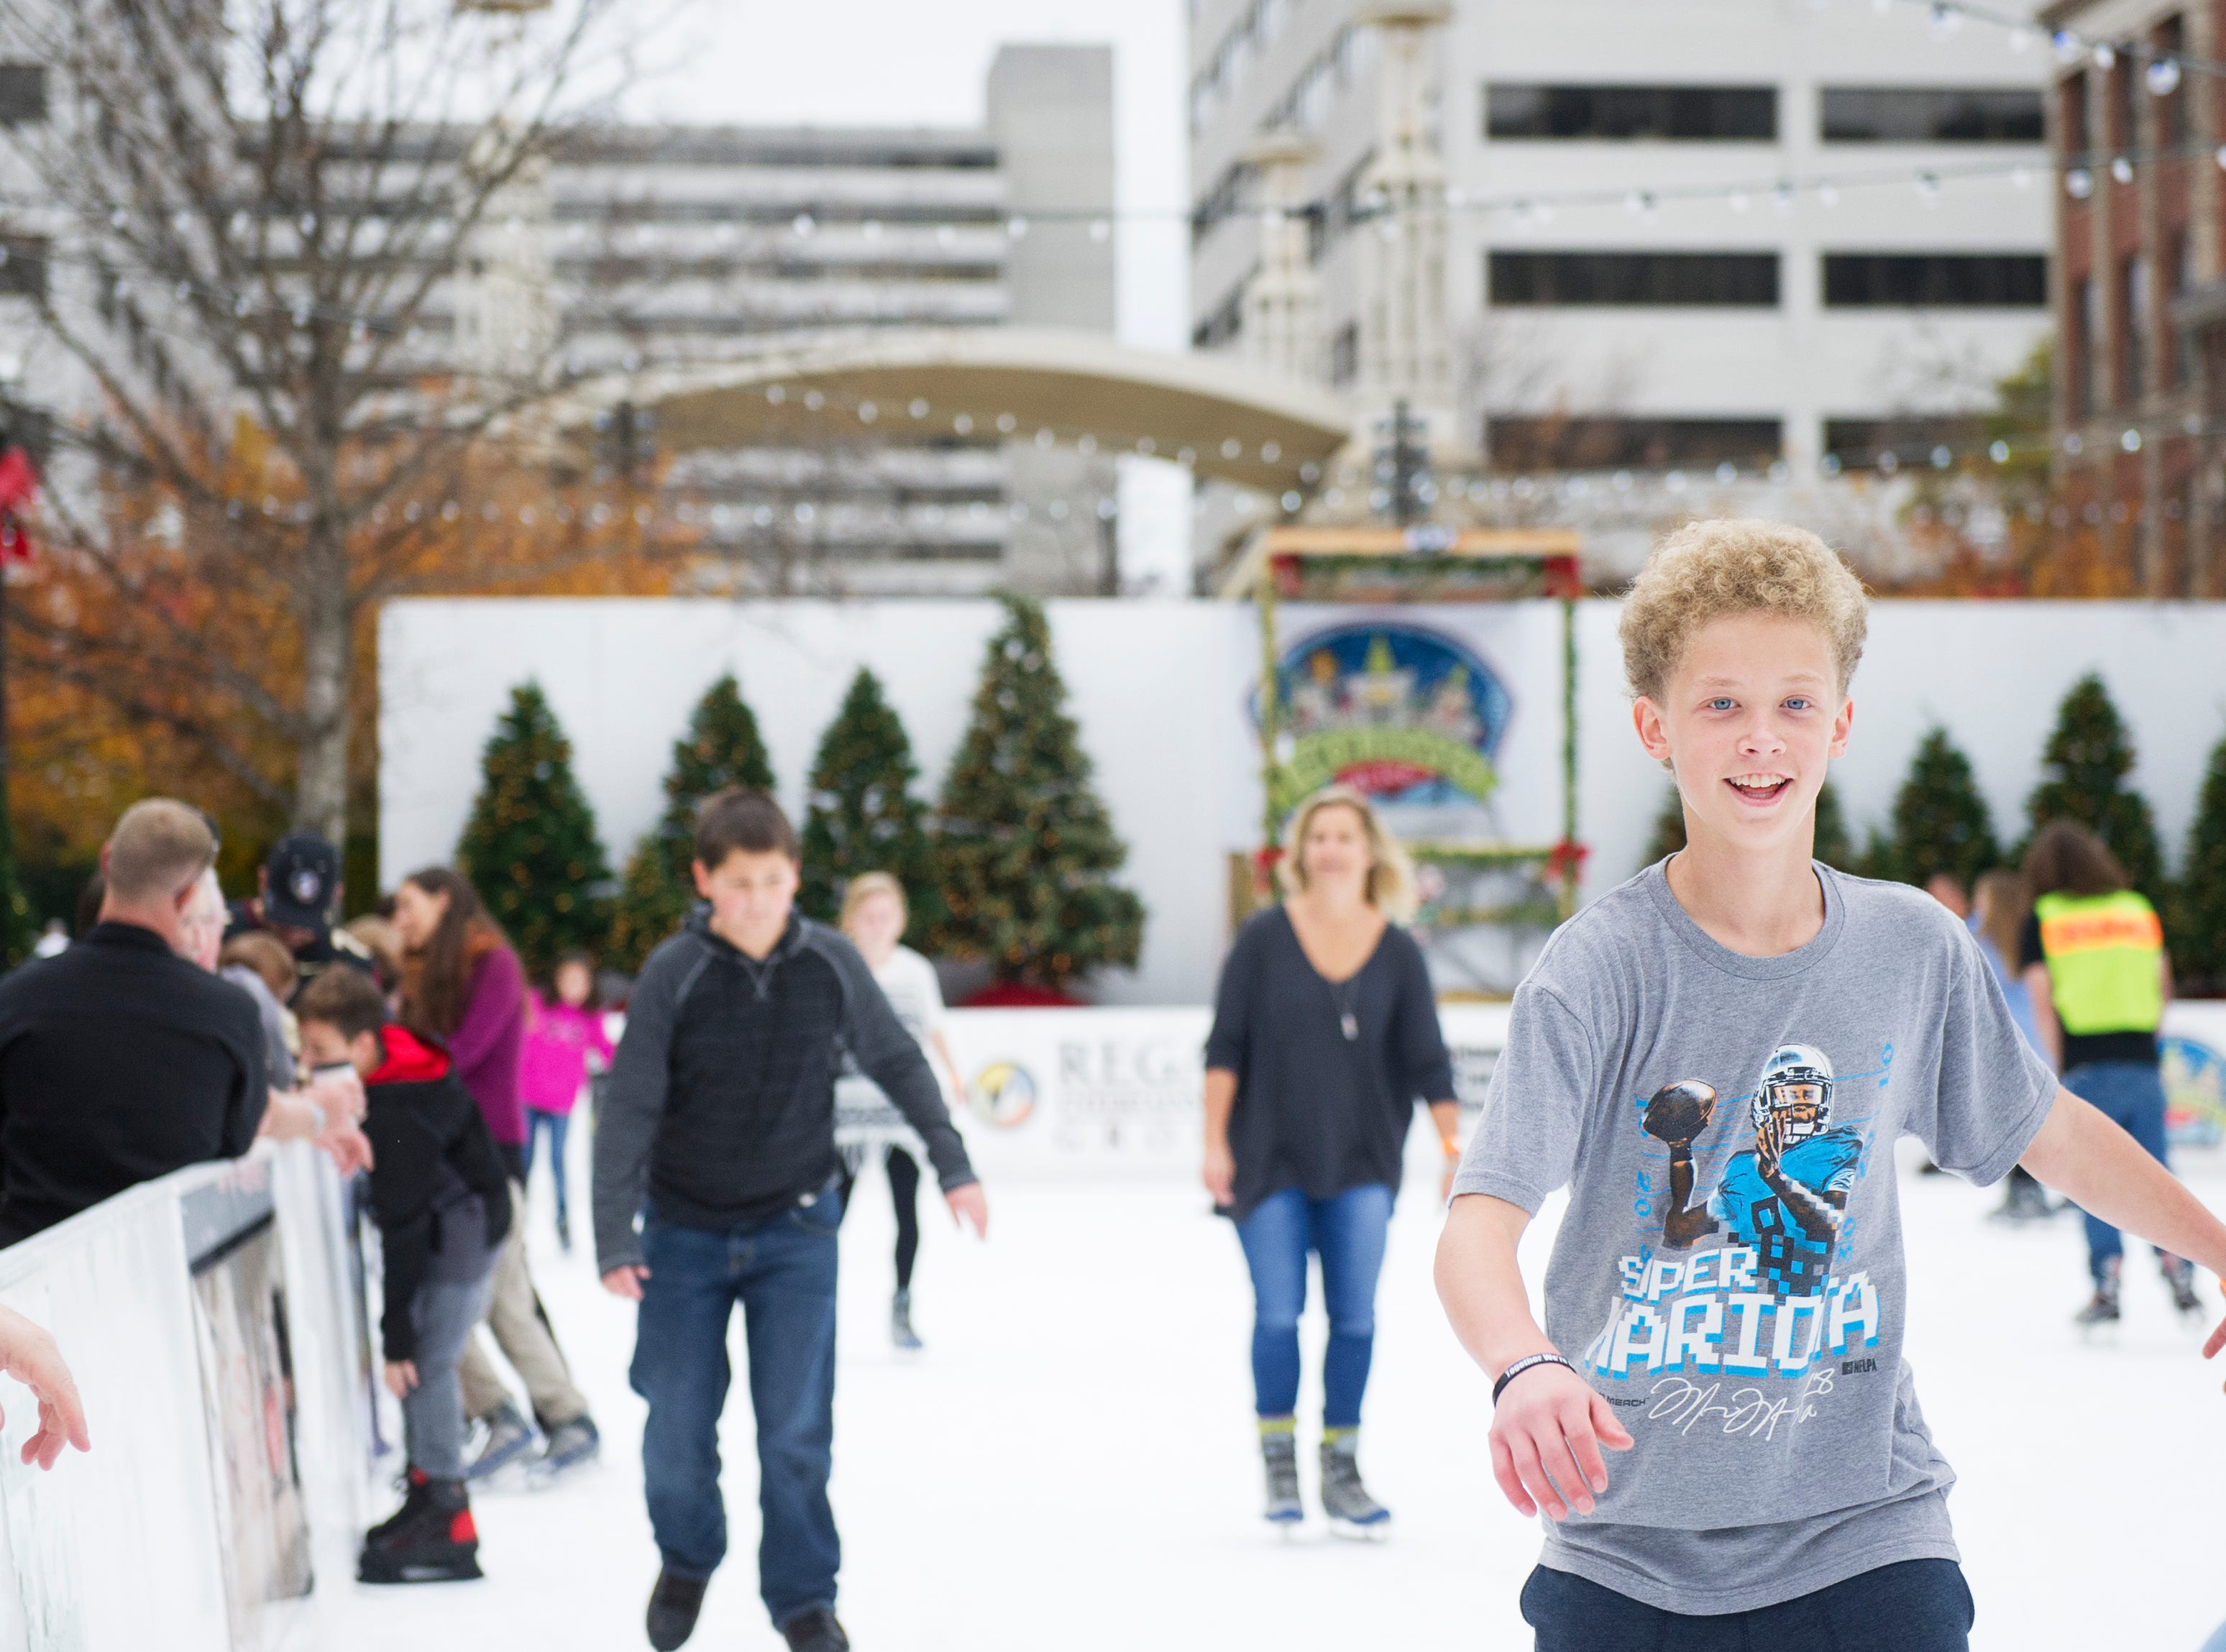 Charlie Rice of Knoxville ice skates in the warm November weather during opening weekend for the Market Square ice skating rink Saturday, Nov. 28, 2015.